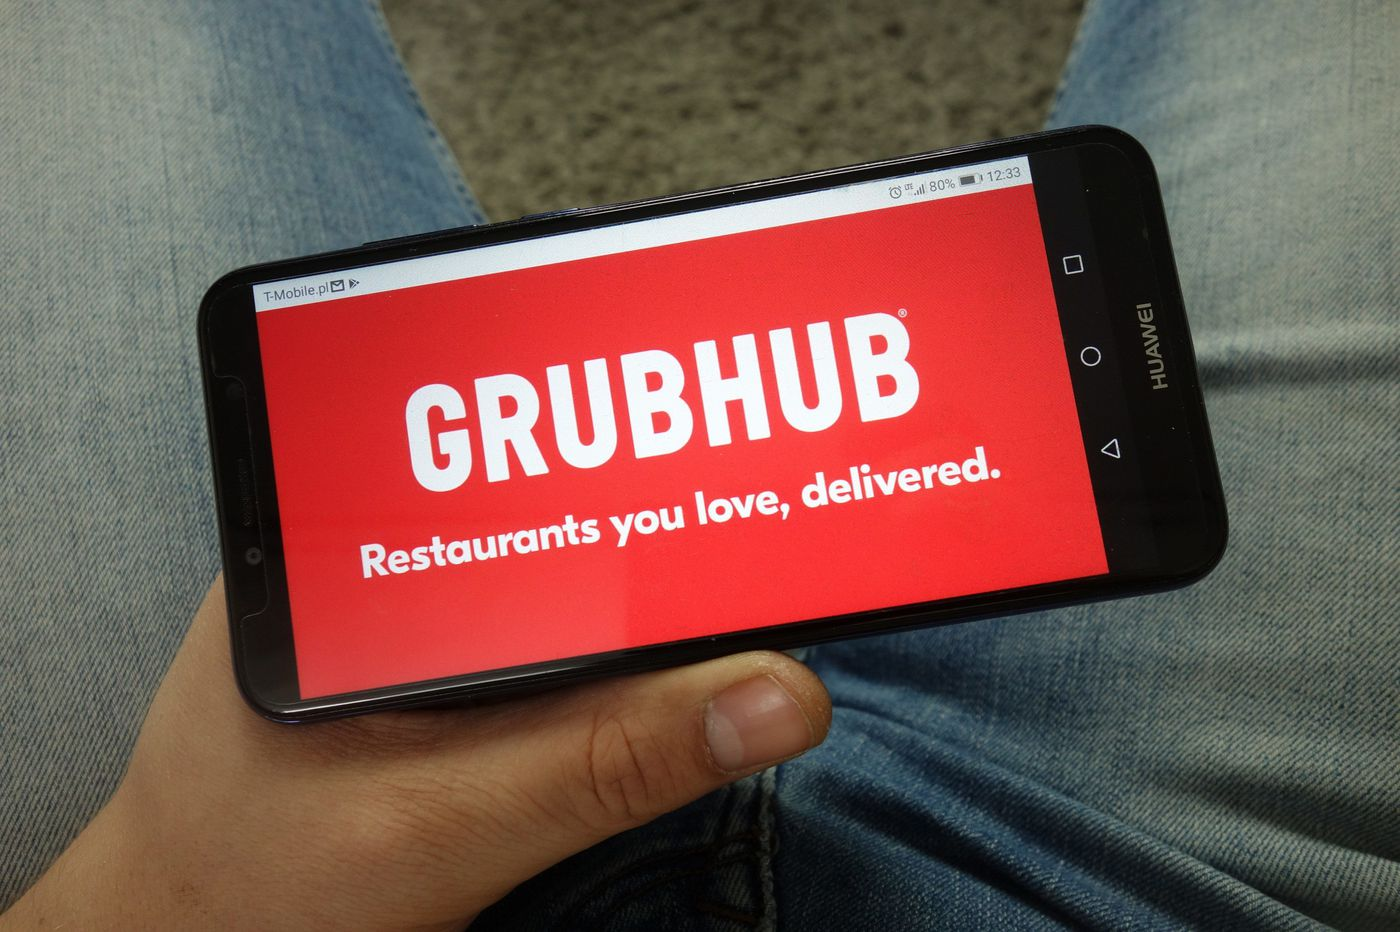 Philly restaurant CEO: Know the risks before ordering from Grubhub, Postmates | Opinion